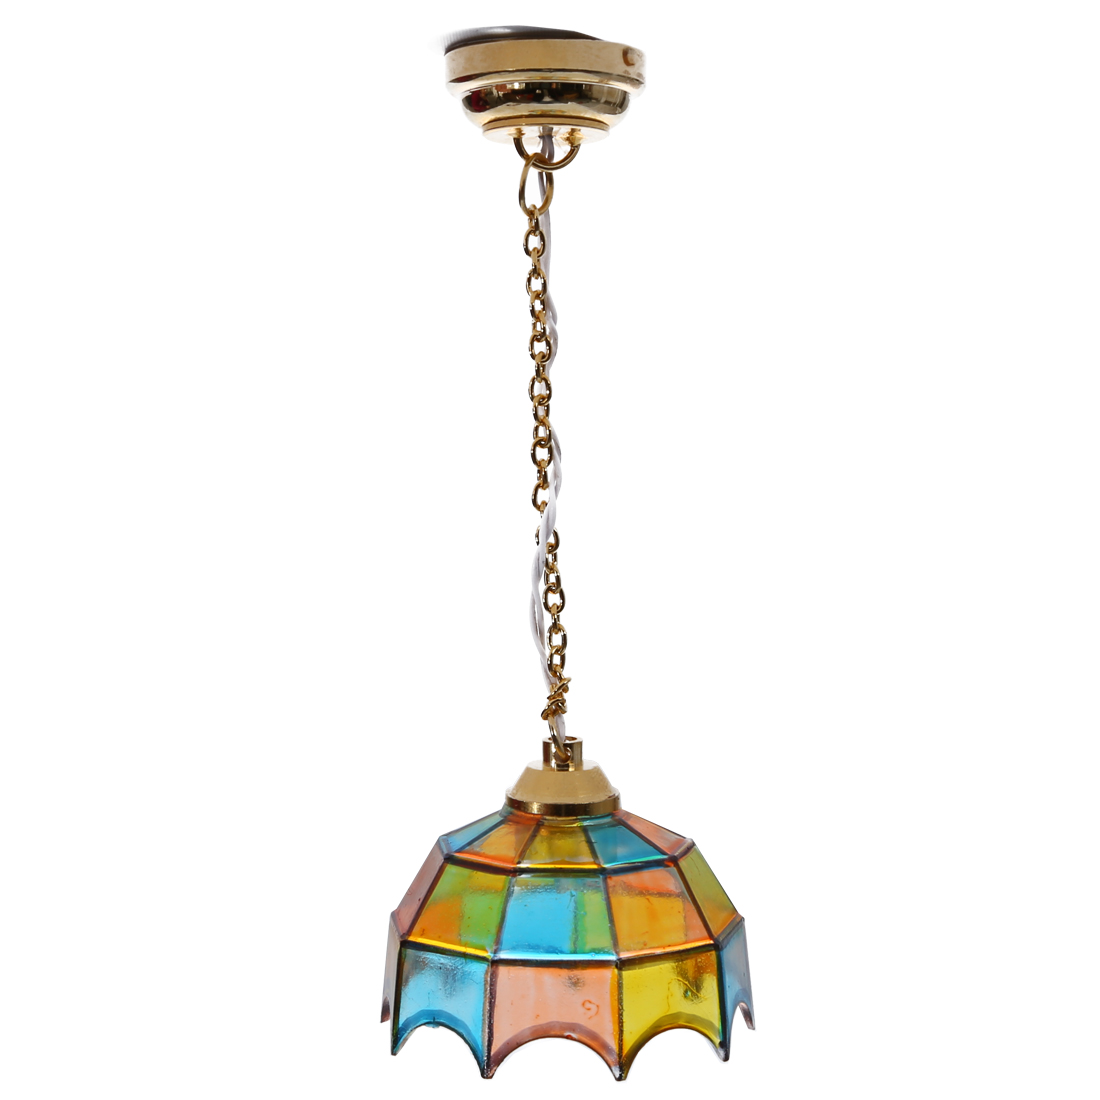 Dollhouse Ceiling Light: Metal 1:12 Dollhouse Miniature Ceiling Lamp Model With